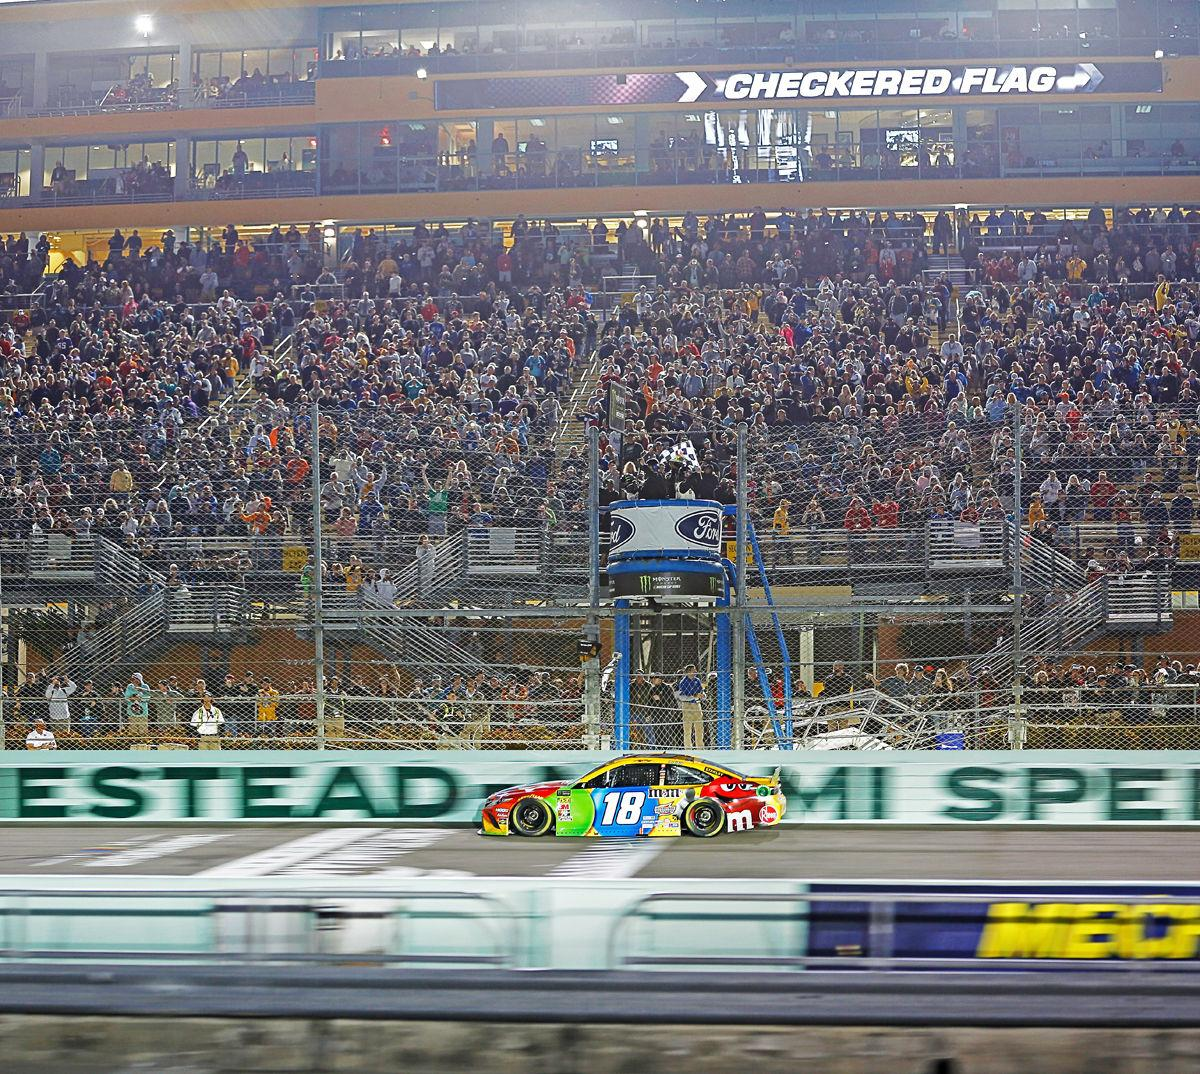 Kyle Busch takes the checkered flag, winning the Ford Eco Boost 400 and his 2nd series championship on Sunday  at Homestead-Miami Speedway